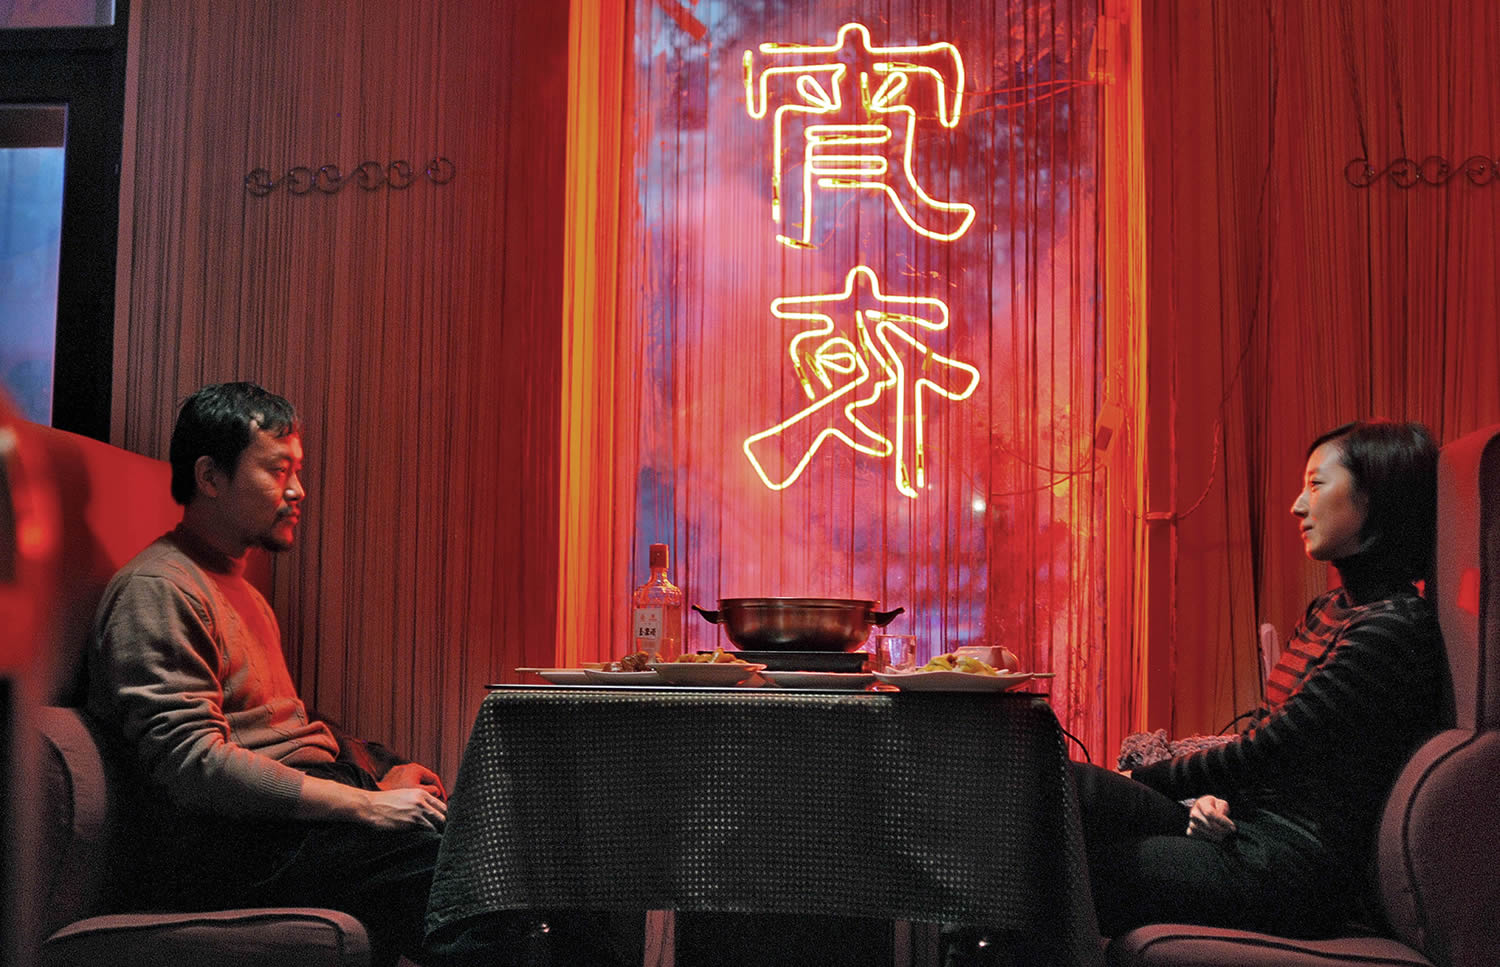 red neon lighting, asian interior, black coal thin ice